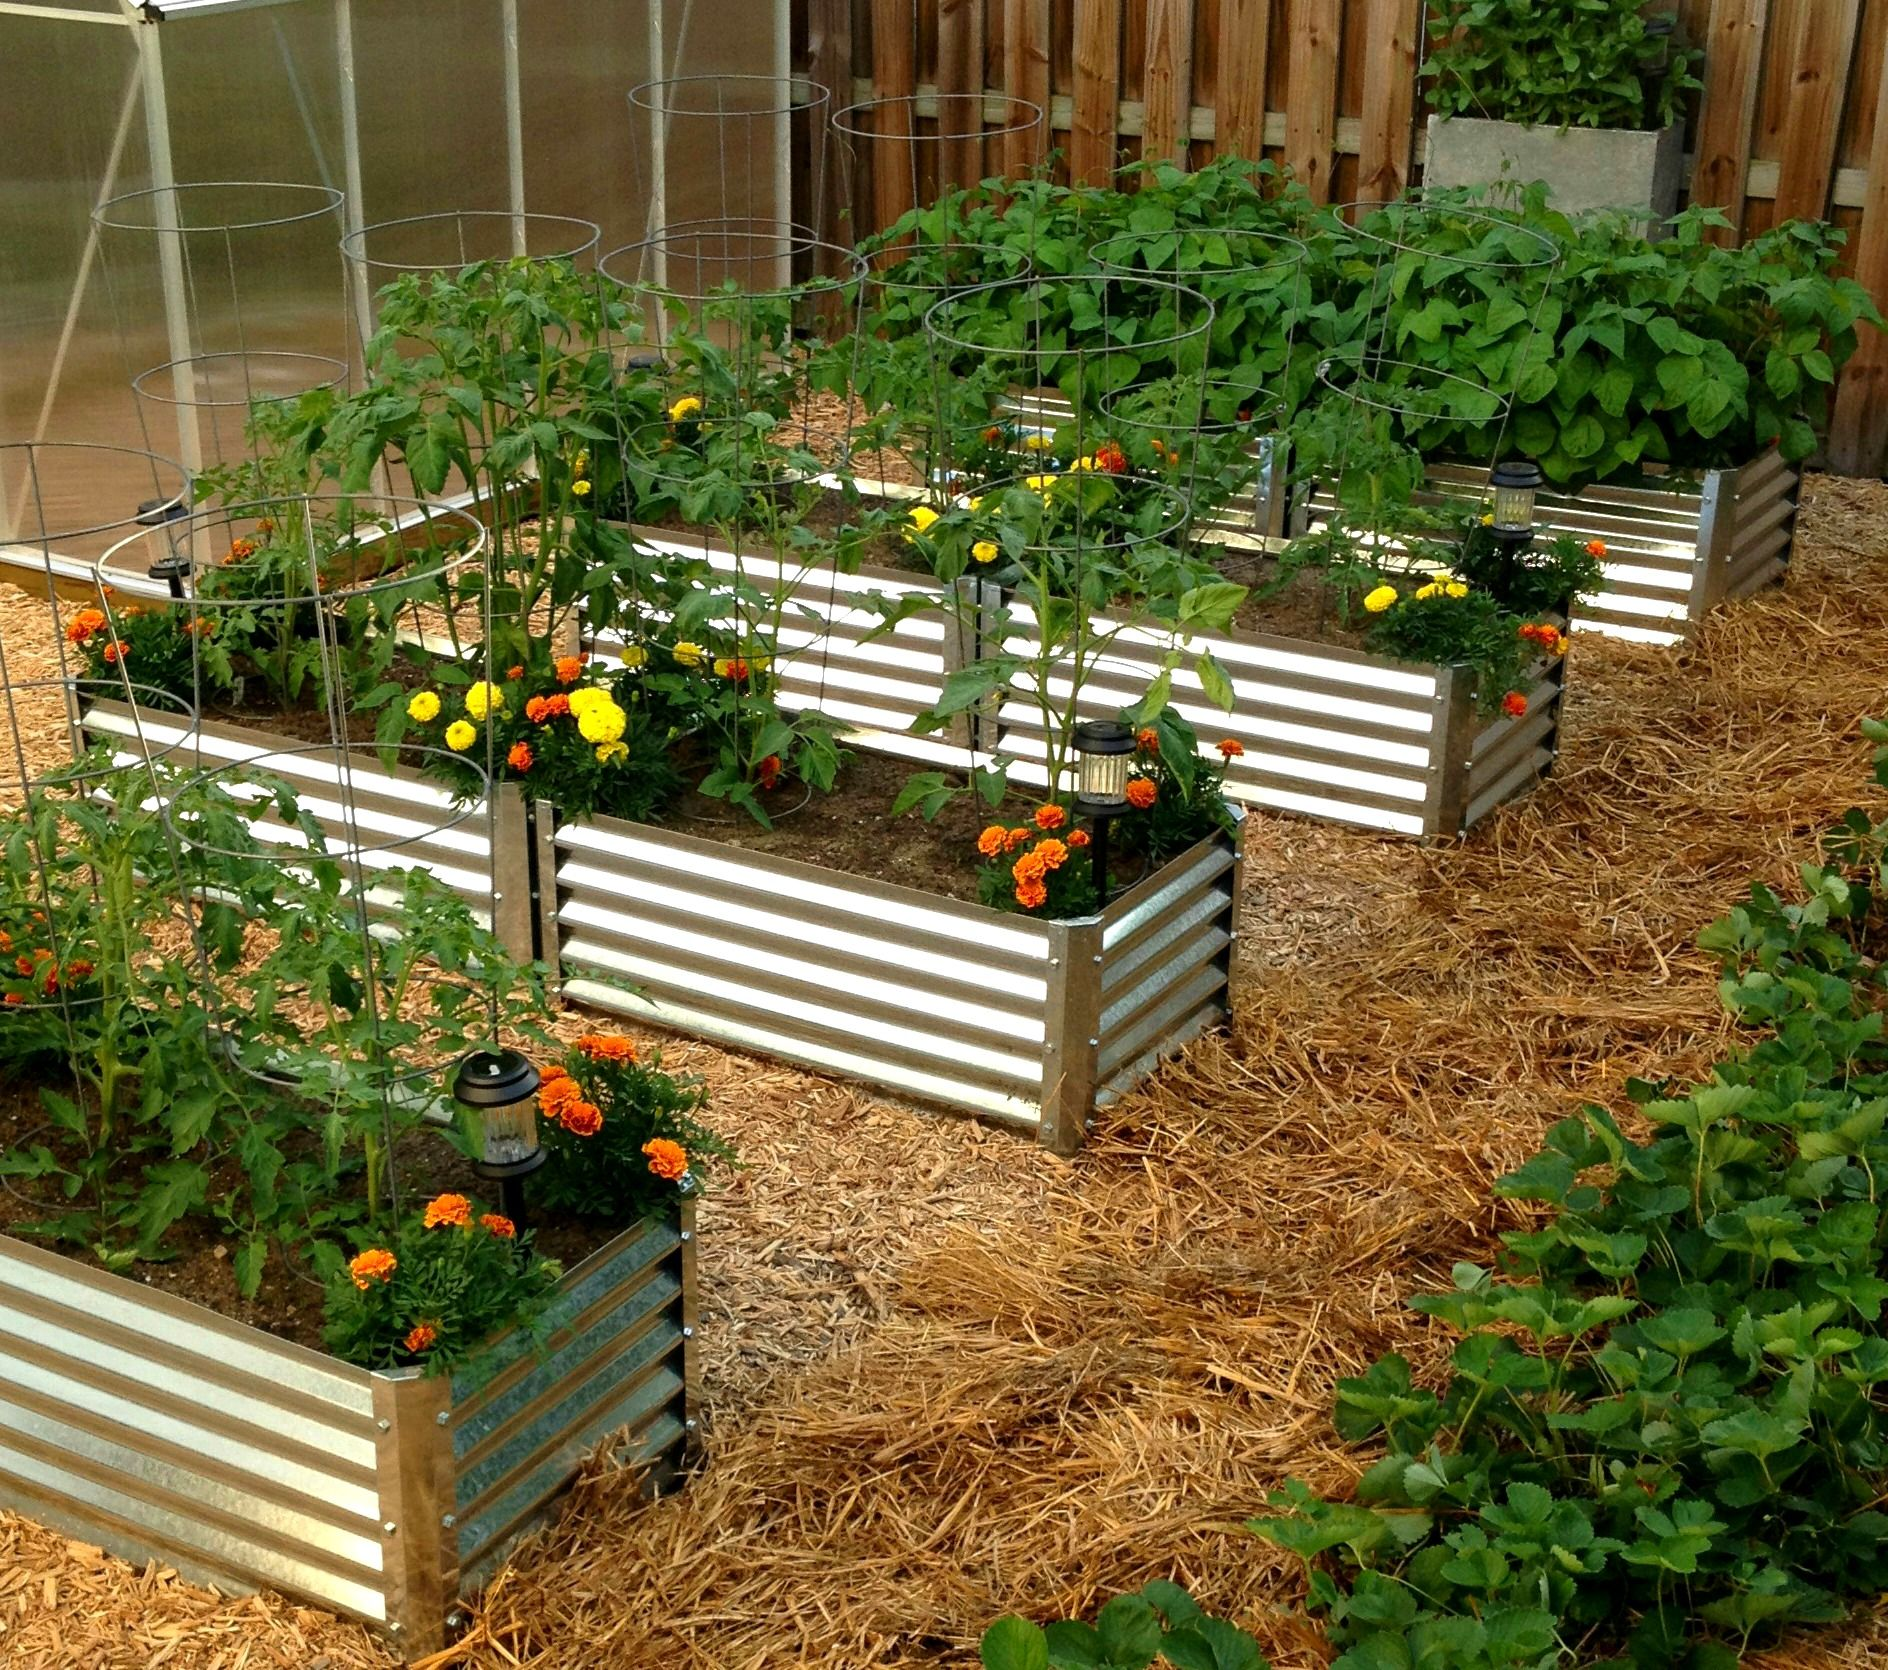 Metal garden beds 100 recyclable galvanized steel material no more wood rot unique garden for Best material for raised garden beds